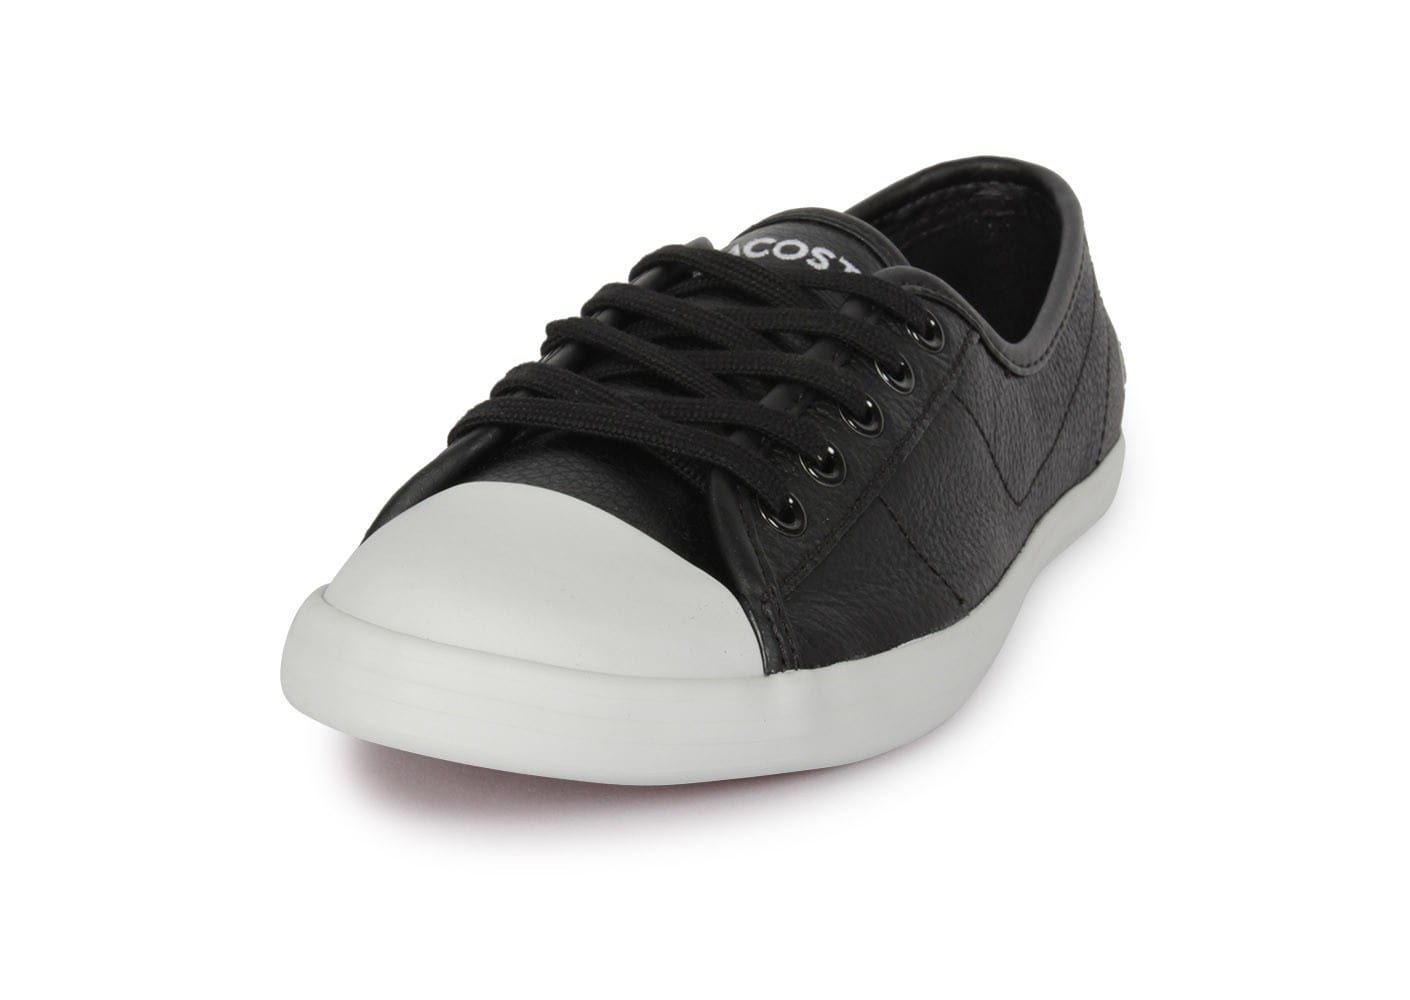 0c6a62598f2 Lacoste Ziane Lcr Noire - Chaussures Chaussures - Chausport